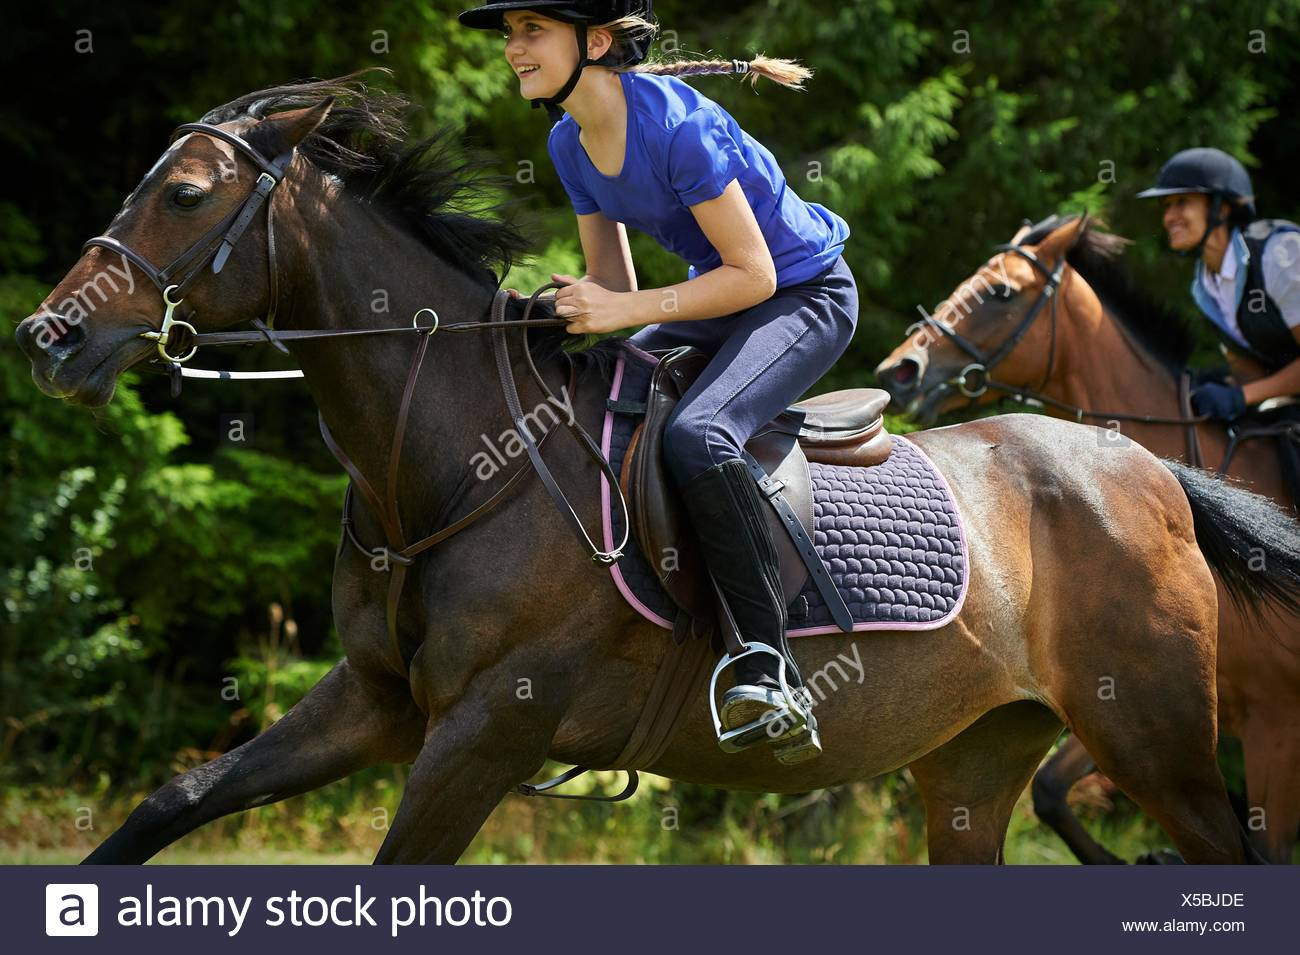 Side view of girl riding horse smiling - Stock Image